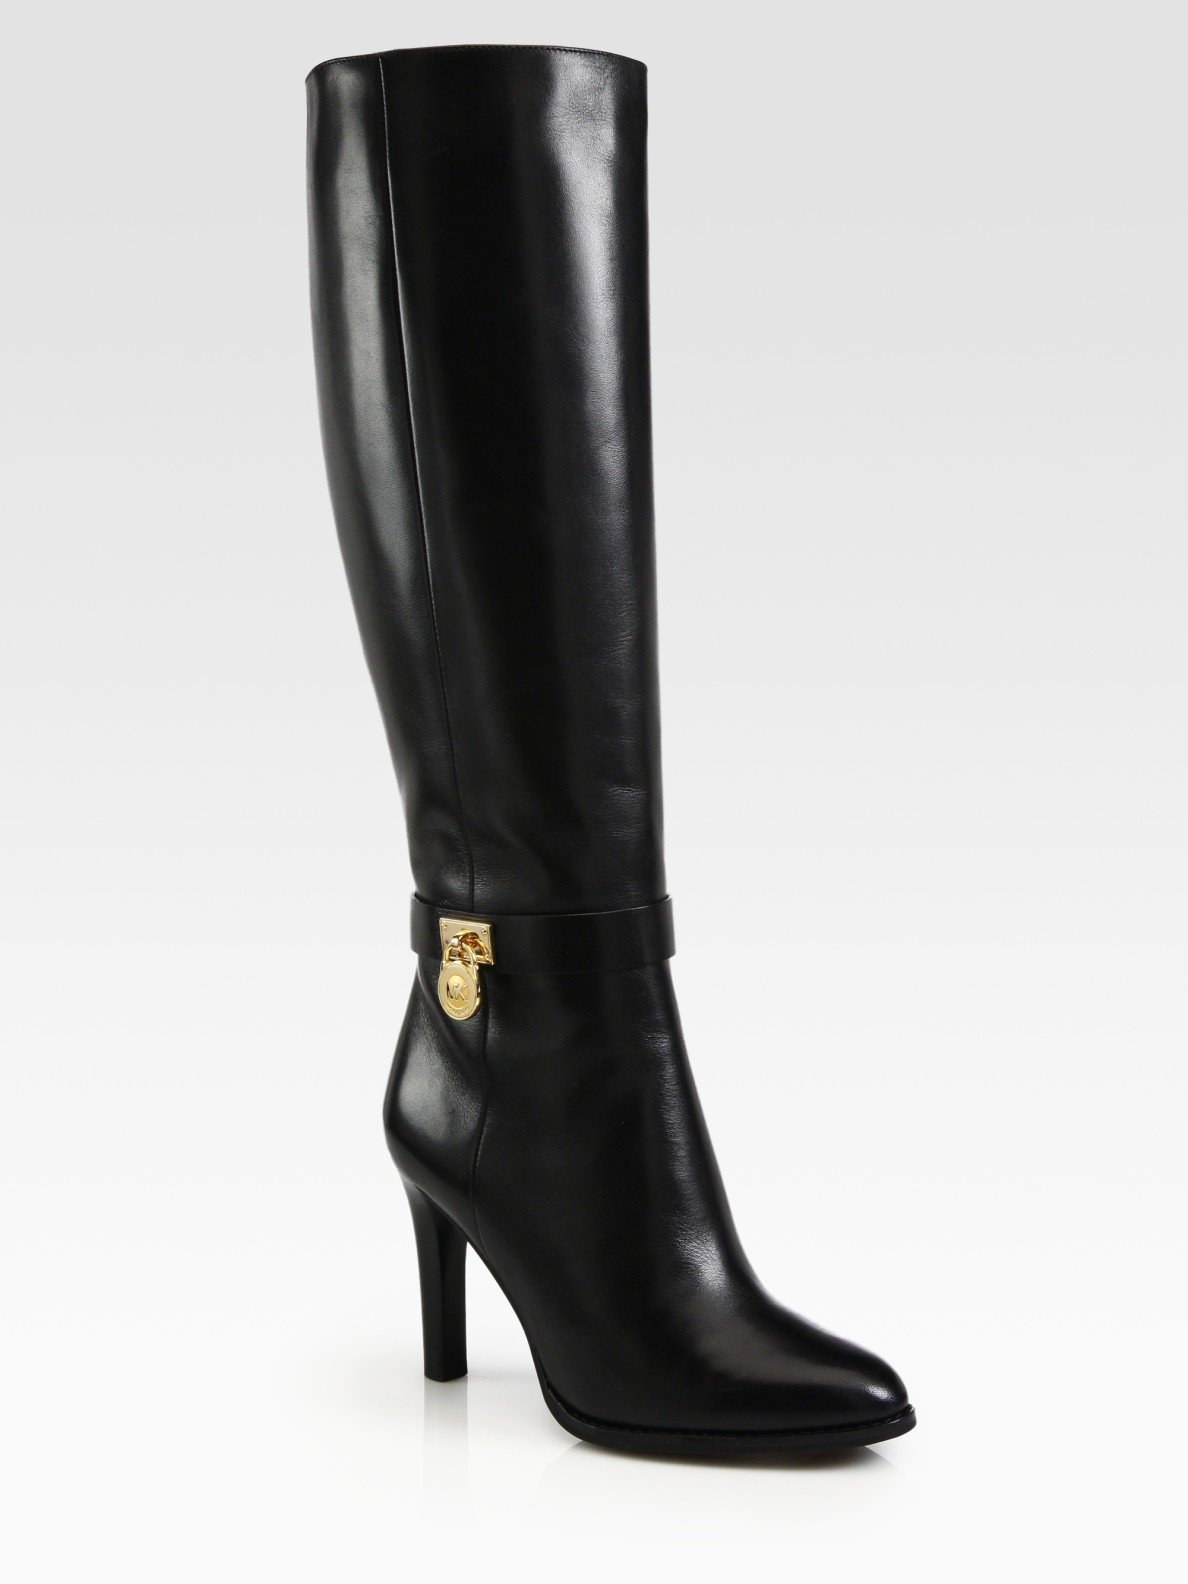 Michael Michael Kors Hamilton Leather Boots In Black | Lyst